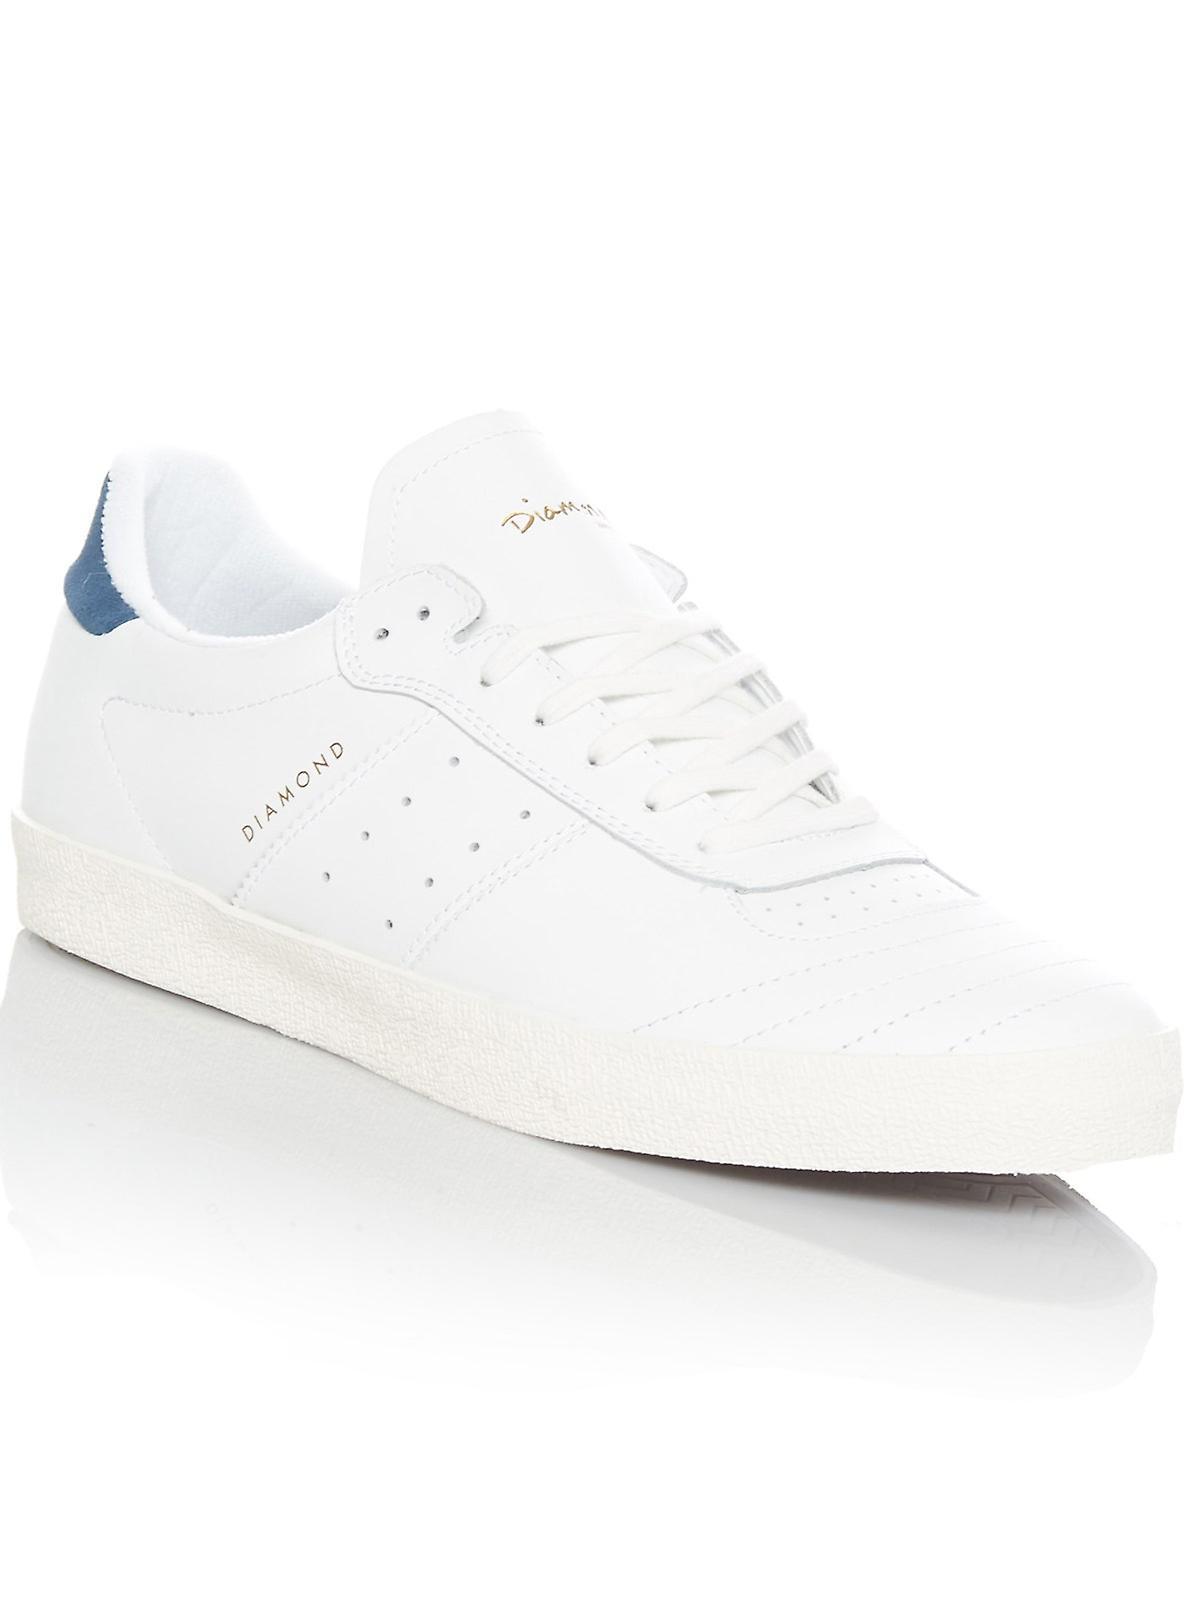 Diamond Co Supply Co Diamond White Leather Barca Shoe 5e4668